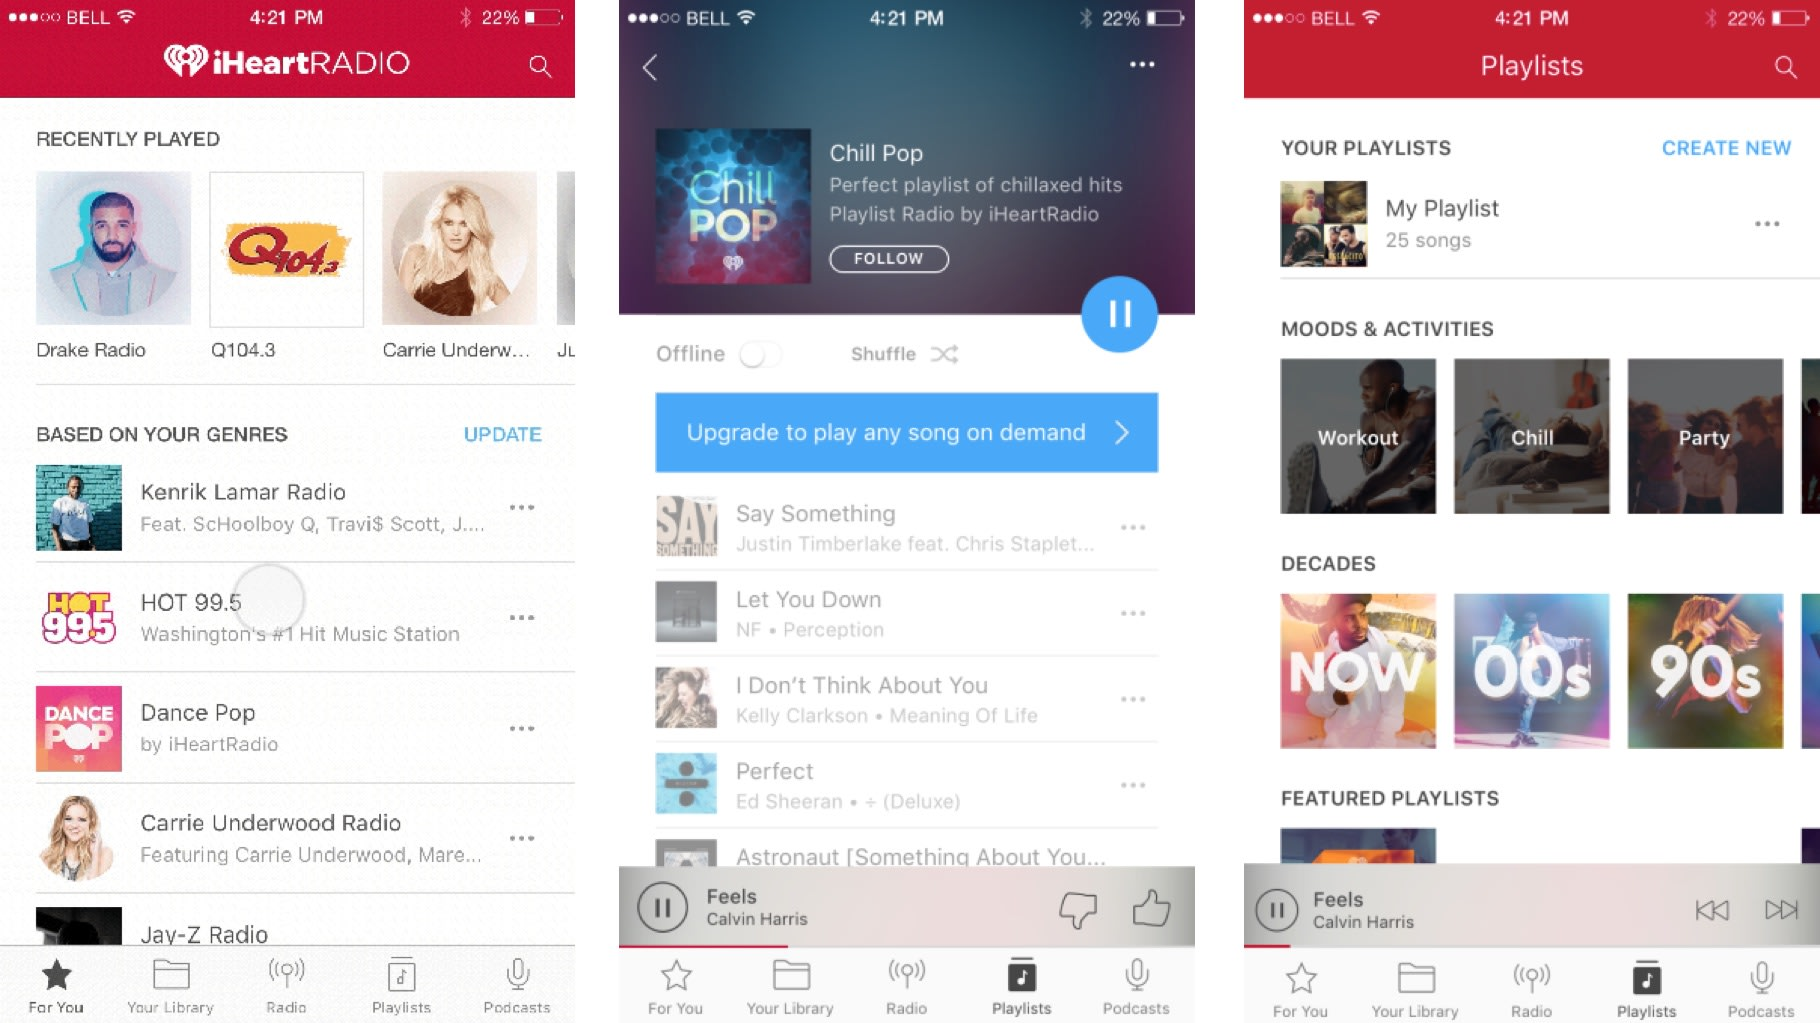 iHeartRadio offers curated playlists to free users